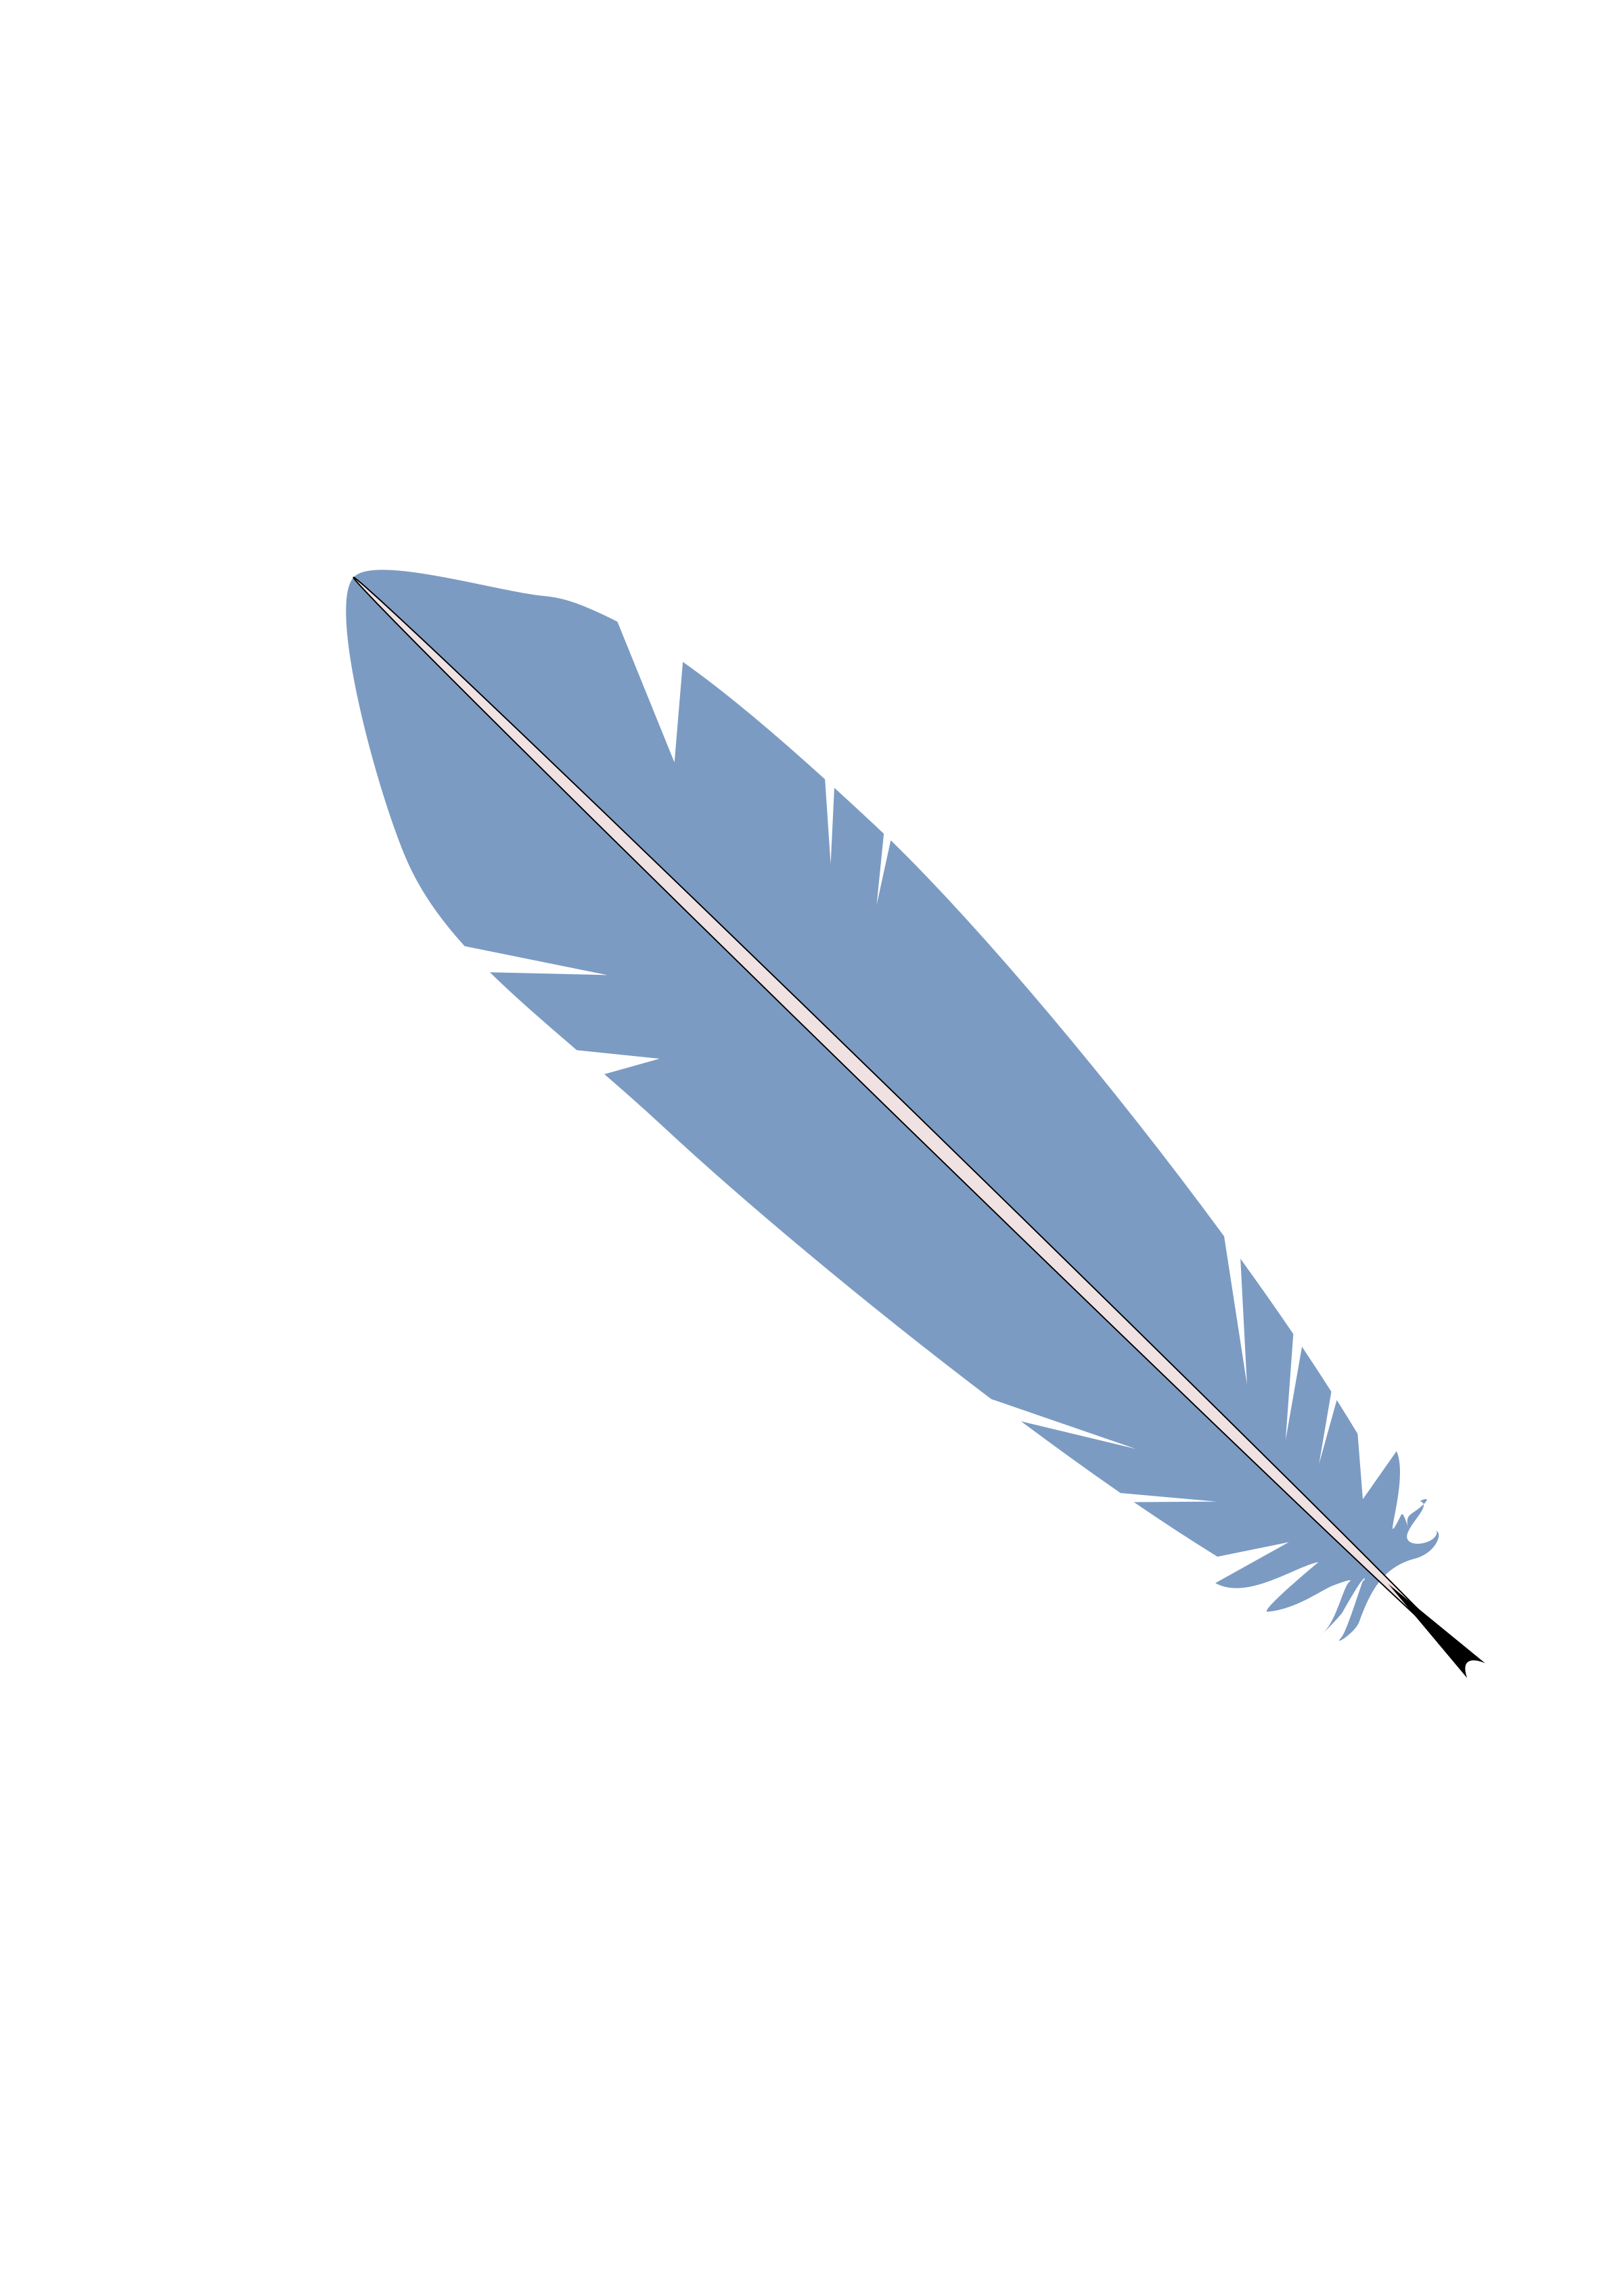 Feather. Feathers clipart svg